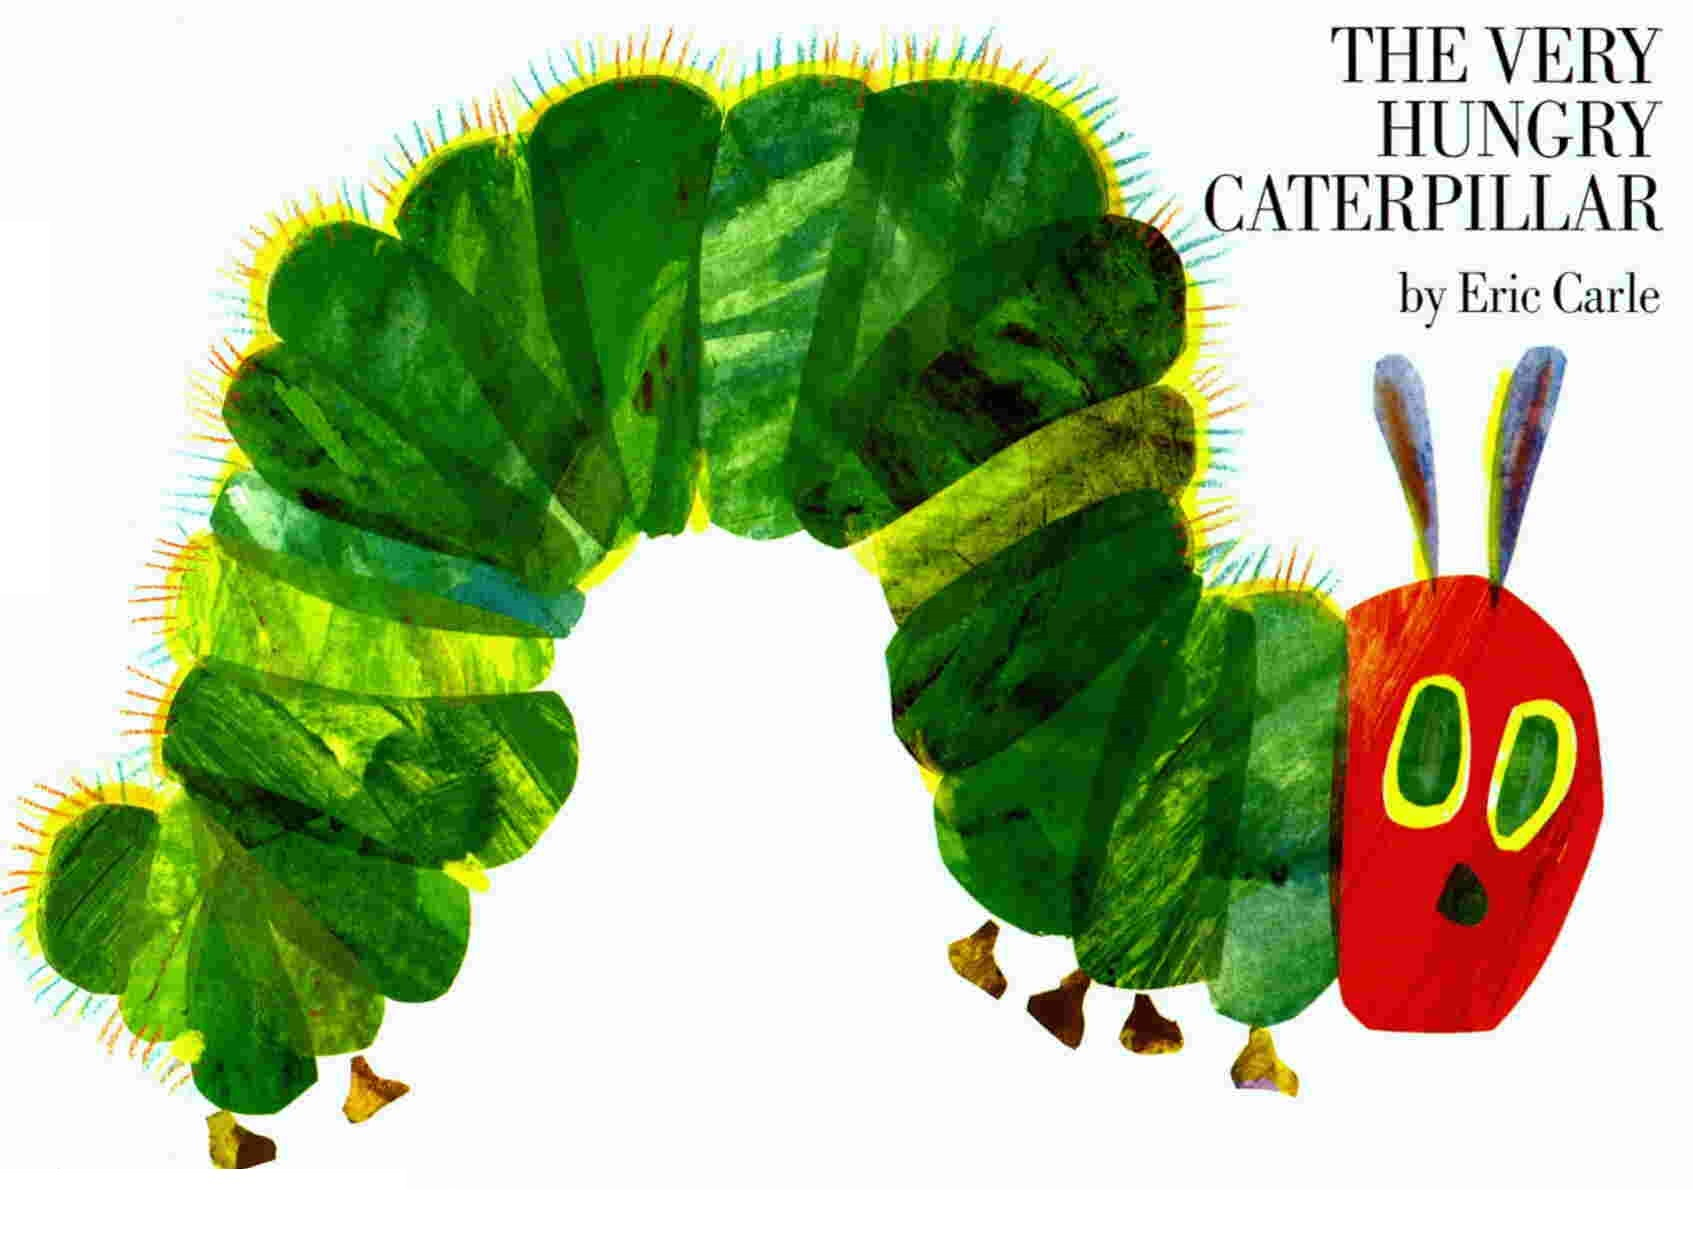 Very Hungry Caterpillar by Eric Carle cover image